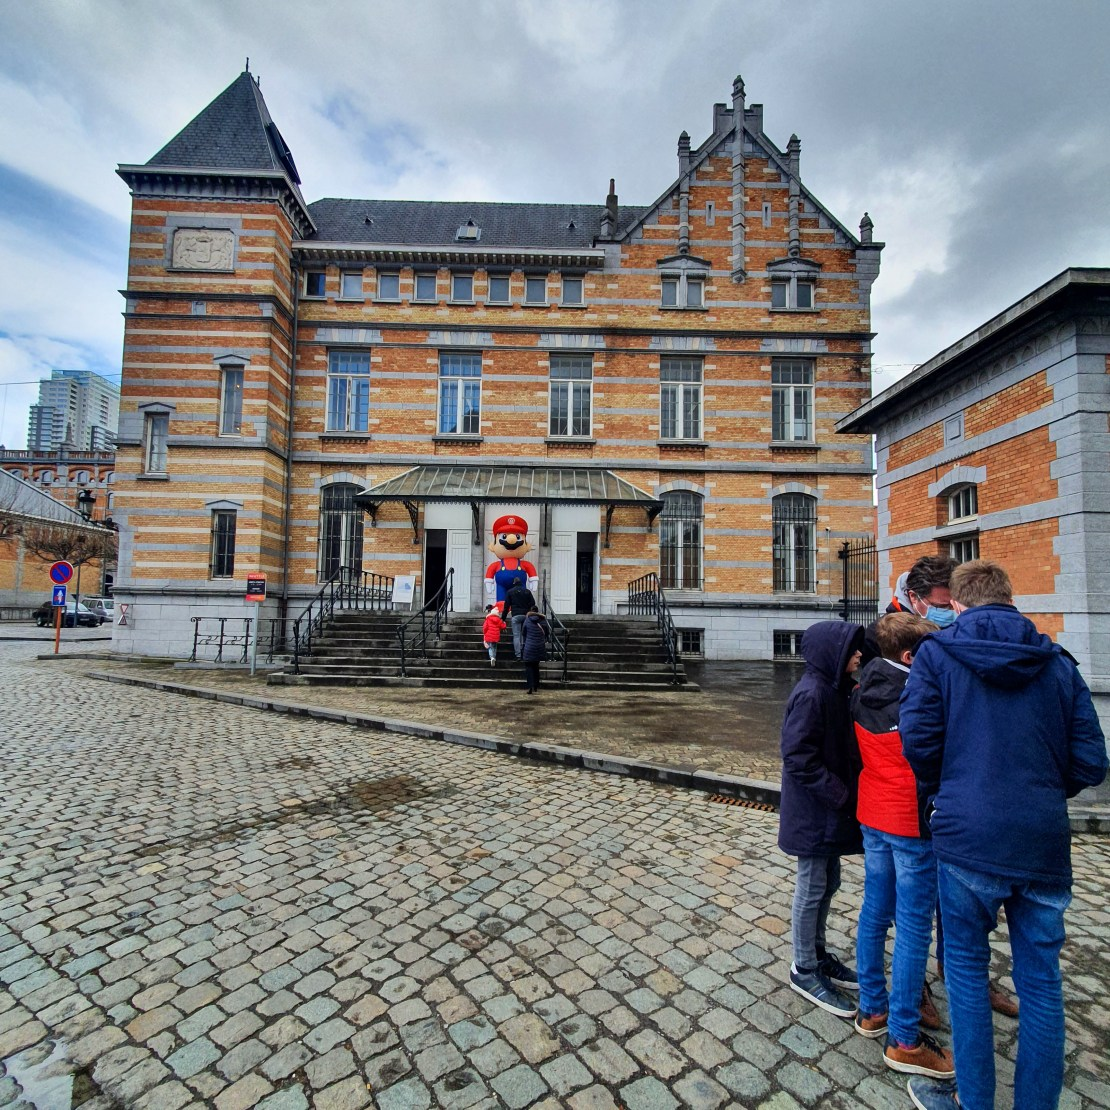 Pixelmuseum - Brussel - Thurn & Taxis